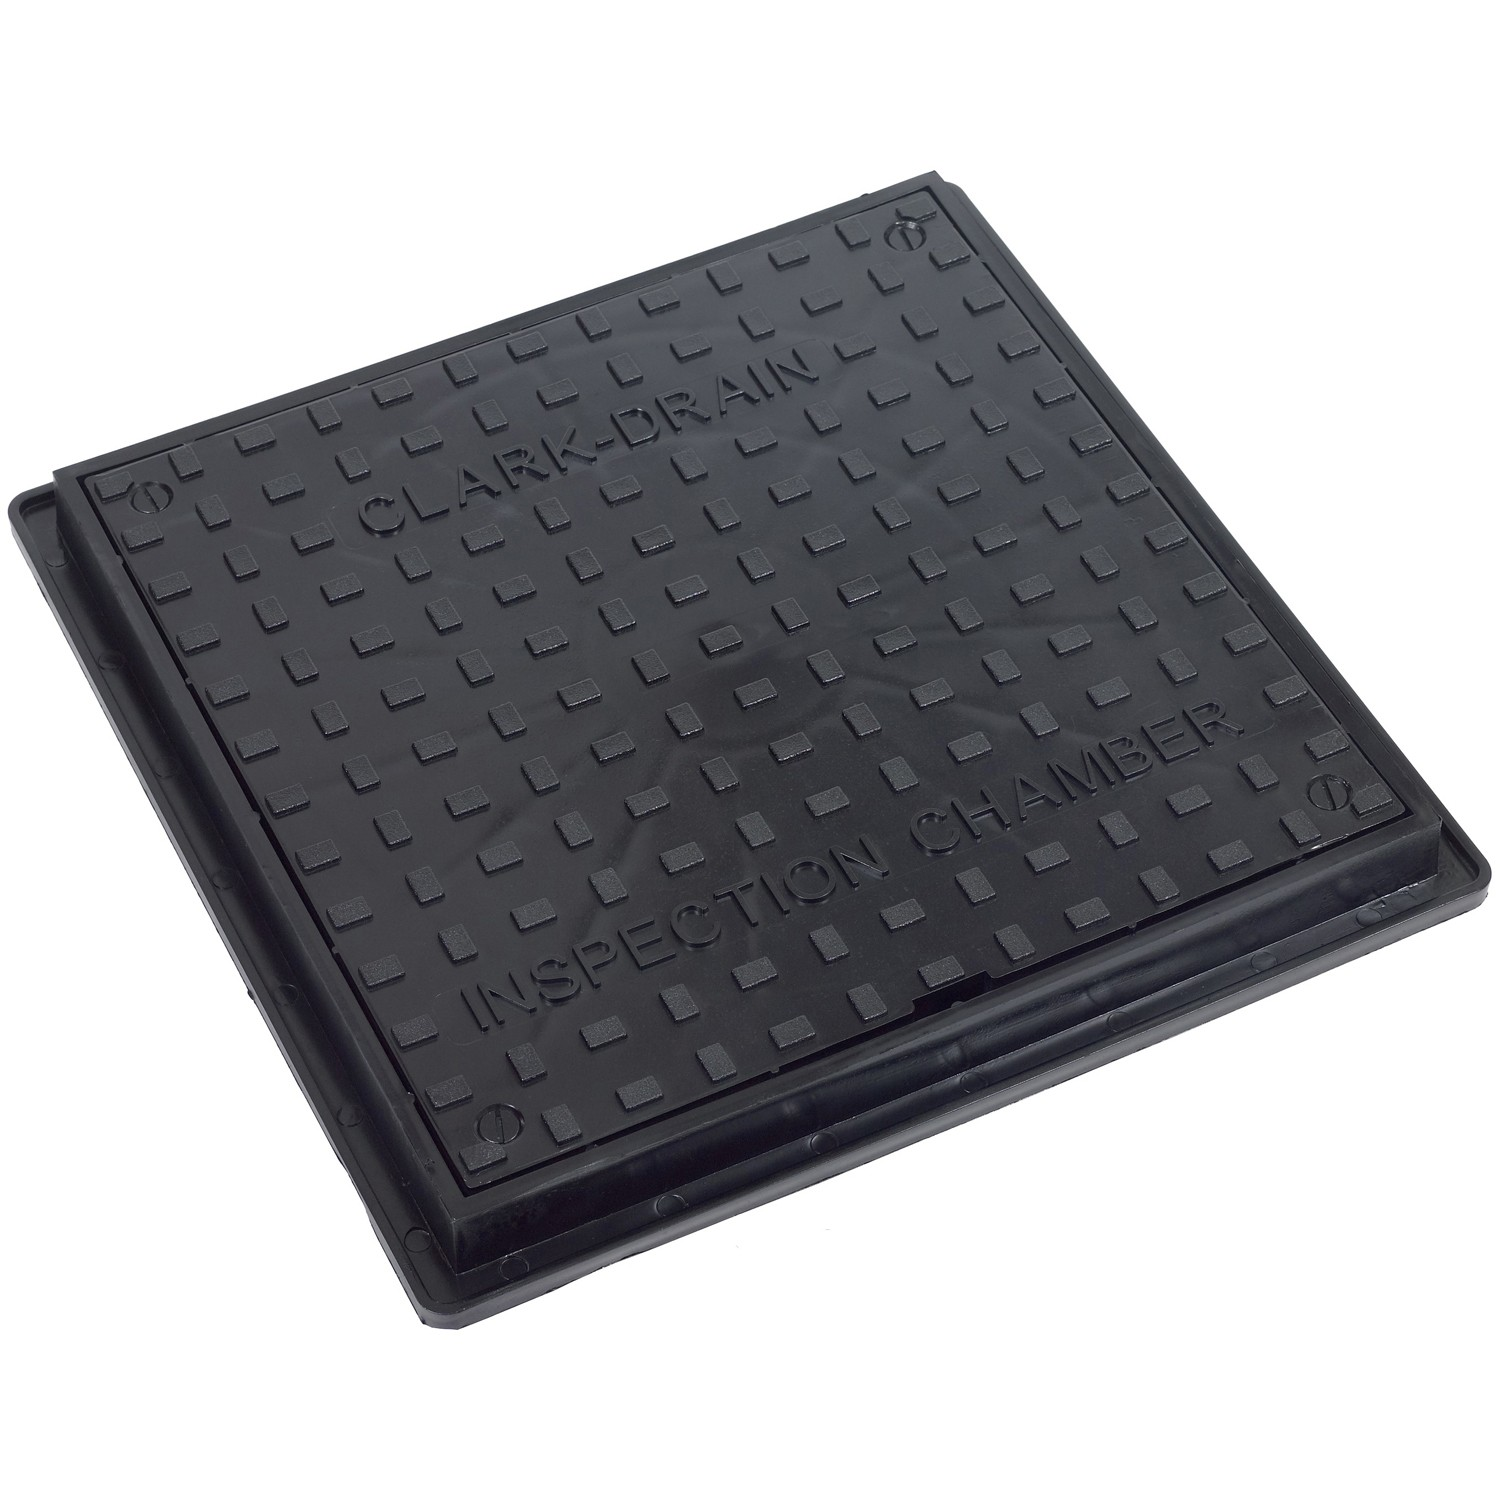 Clark Drain 380mm x 380mm Square Solid Top Chamber Cover and Frame (3.5 Tonne) - Black, 300mm